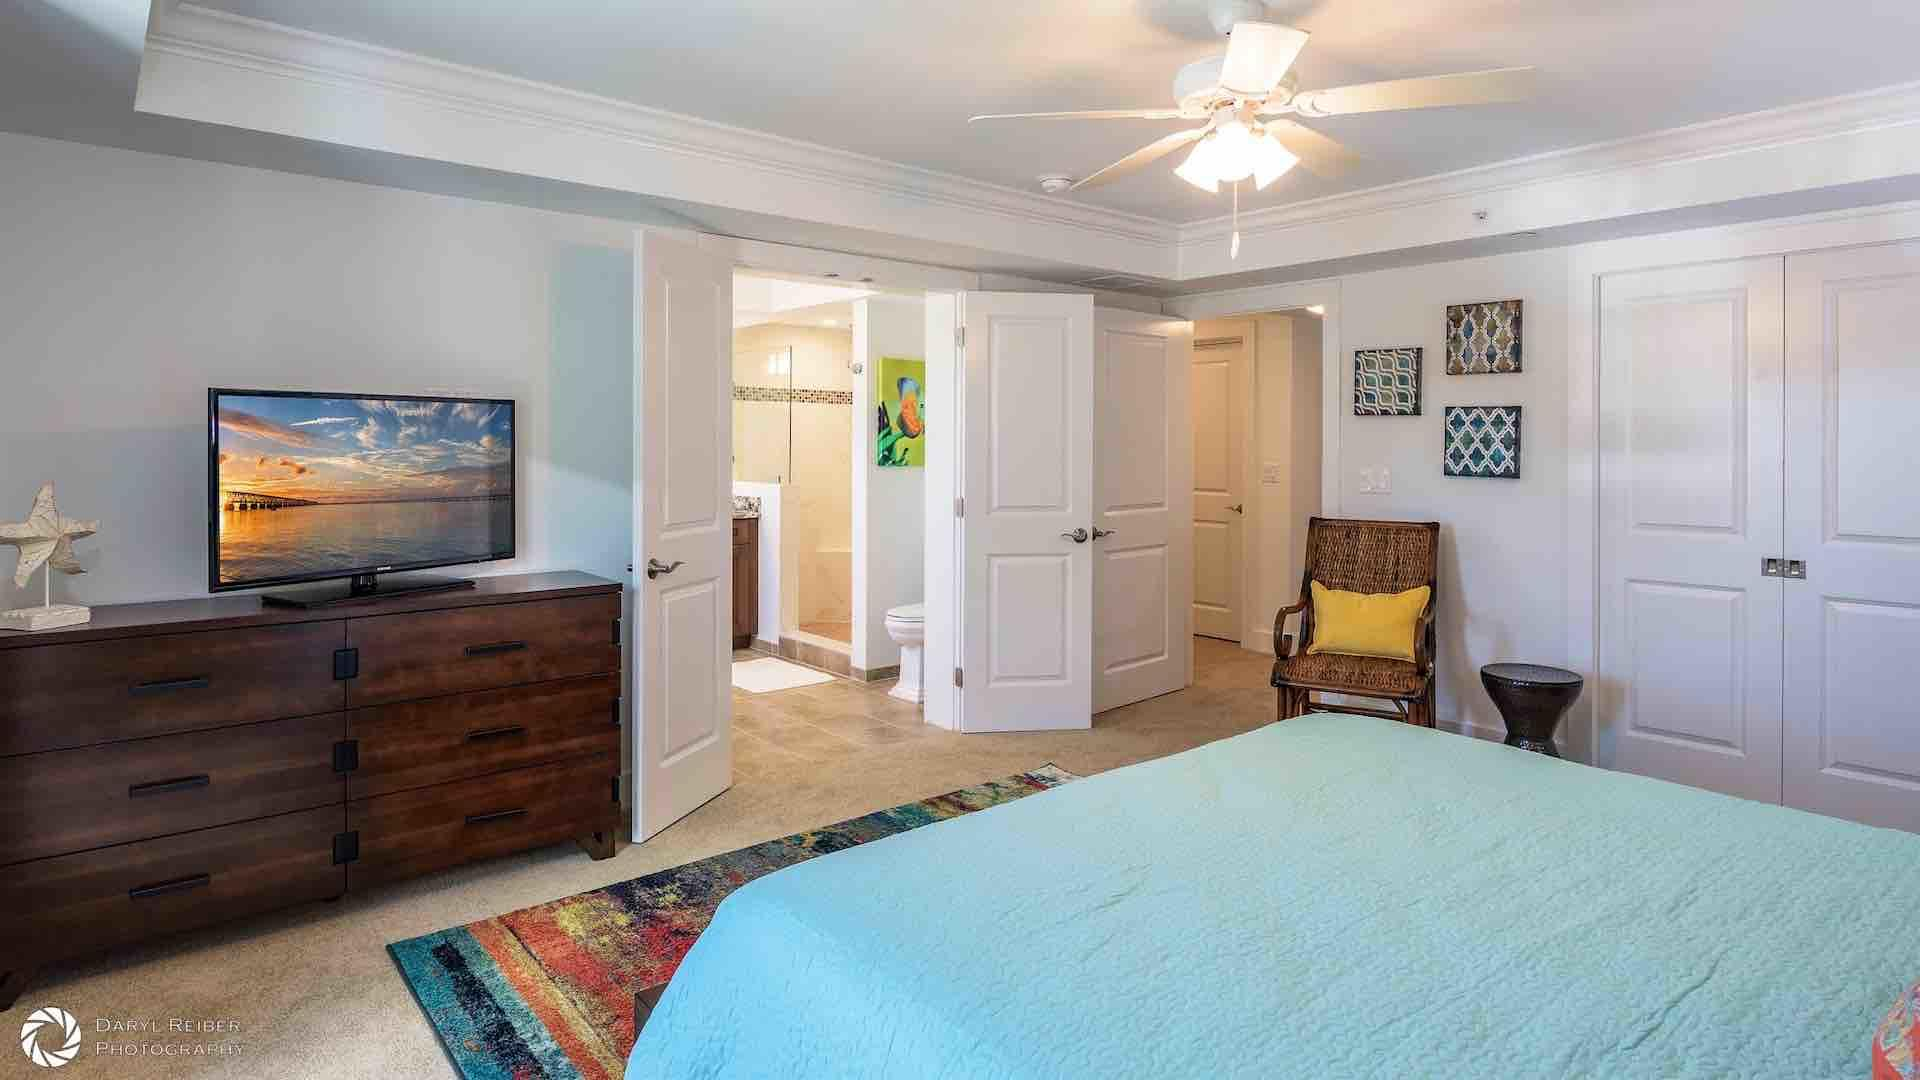 The first master suite has a large flat screen TV and an overhead fan...